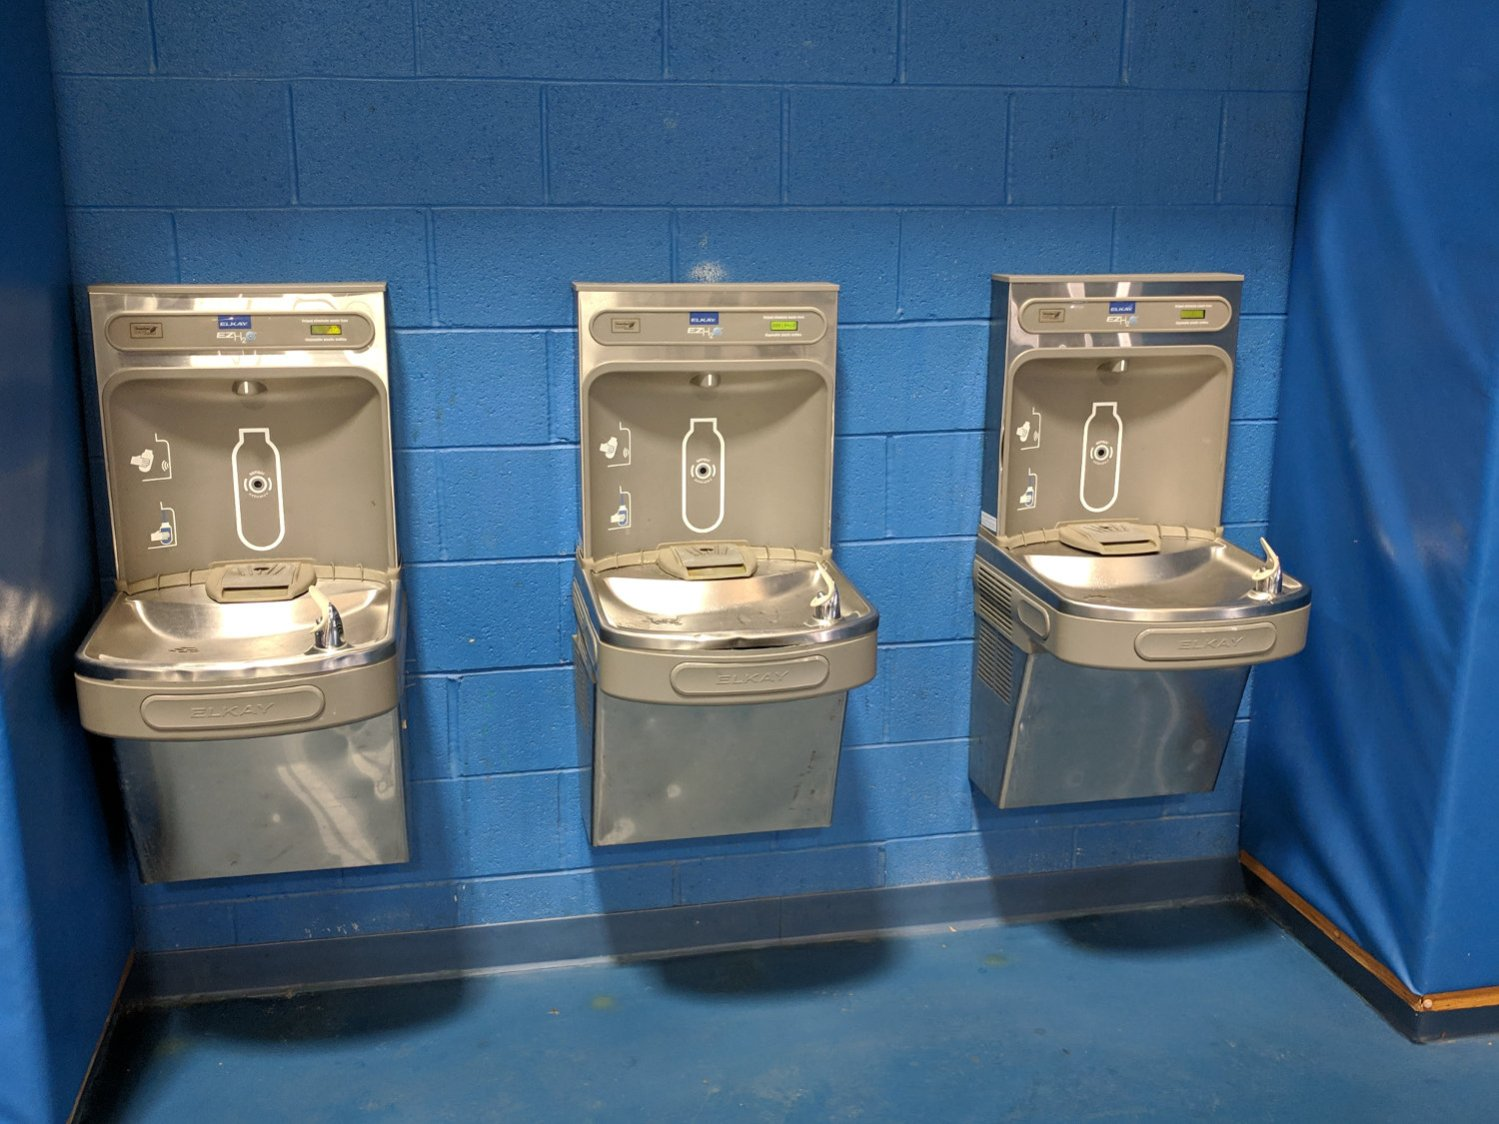 Gym water bottle refill station B - overview